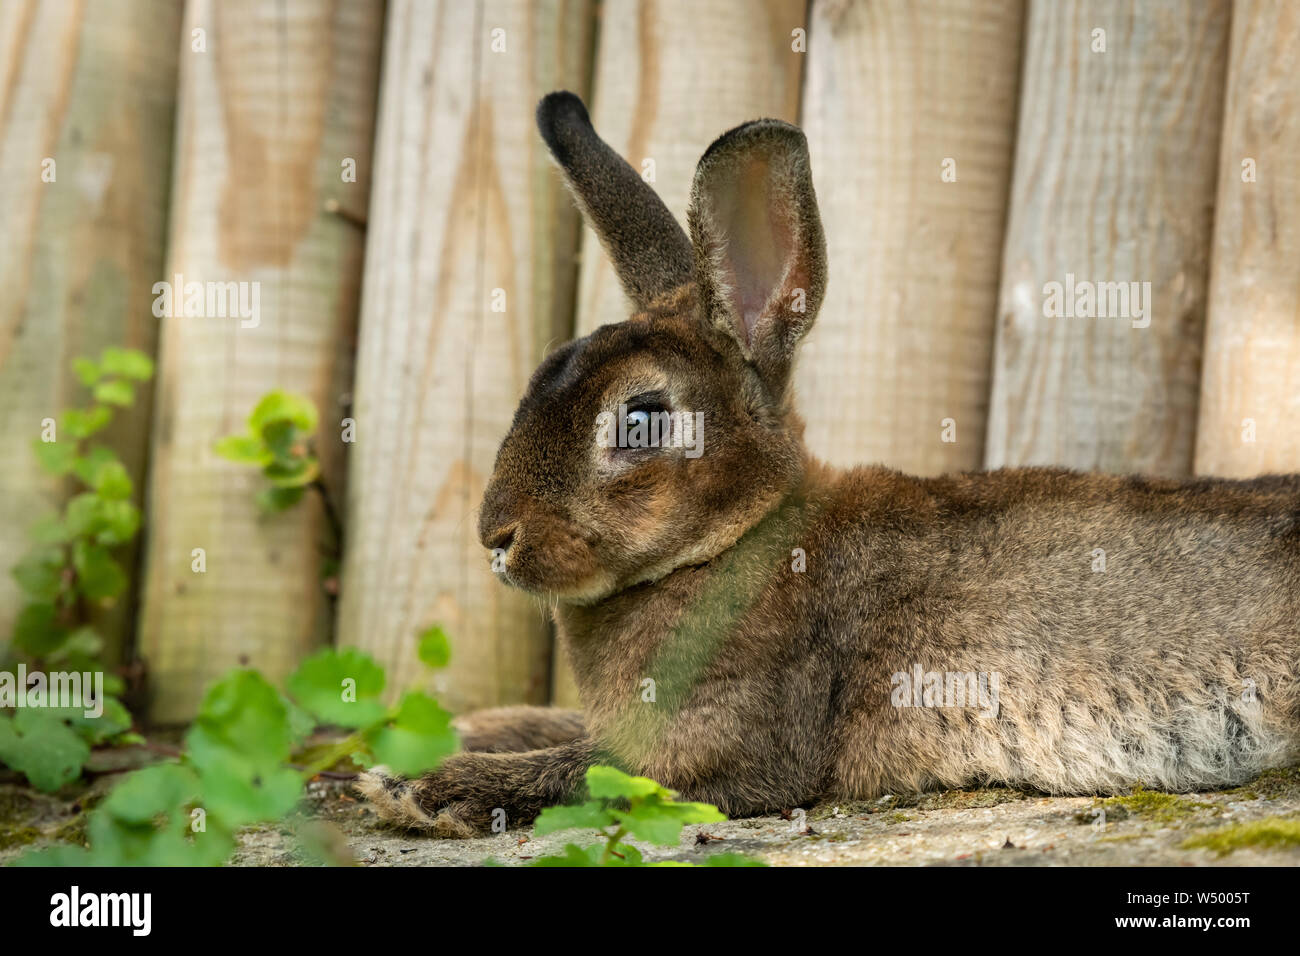 A brown cute dwarf rabbit resting in the grass near a wooden fence Stock Photo